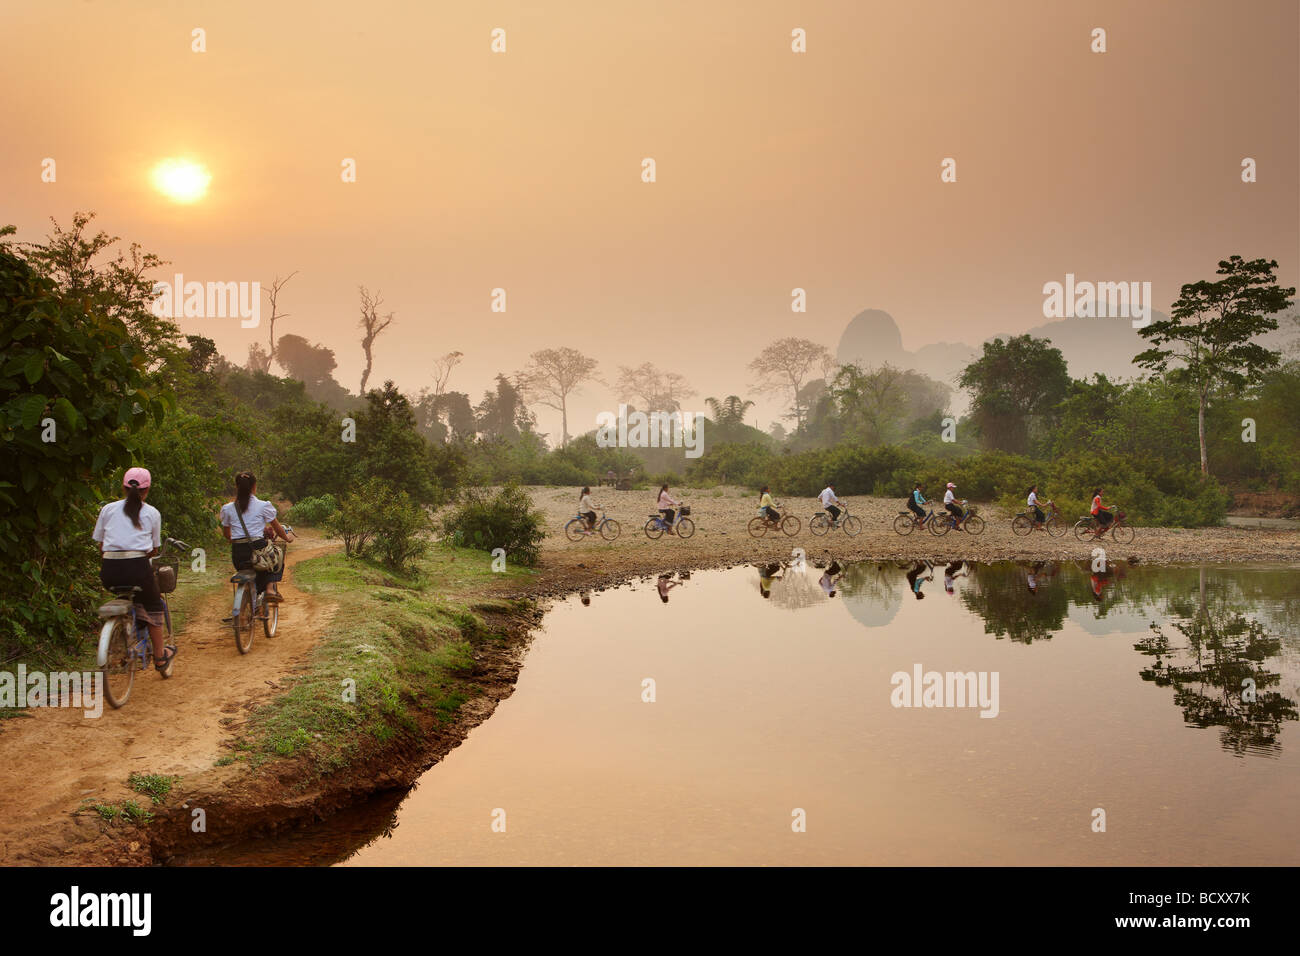 cyclists at dawn, rush hour in the countryside near Vang Vieng, Laos - Stock Image